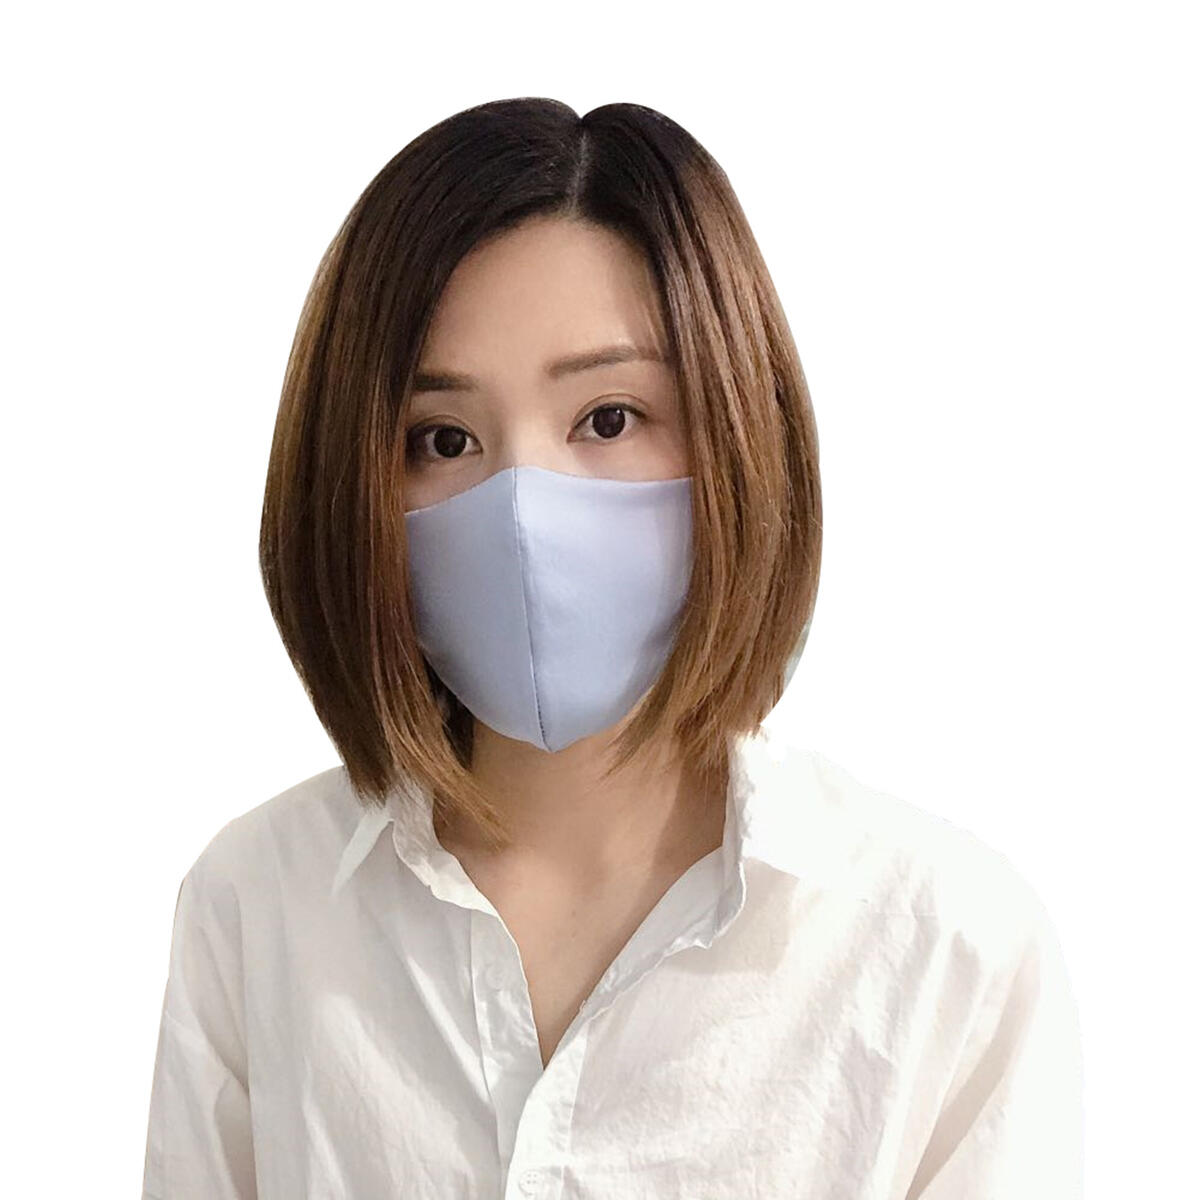 ROSEWARD 100% Mulberry Silk Face Mask Breathable Hypoallergenic with Filter Pocket Washable Reusable Unisex Adjustable Ear Ribbon